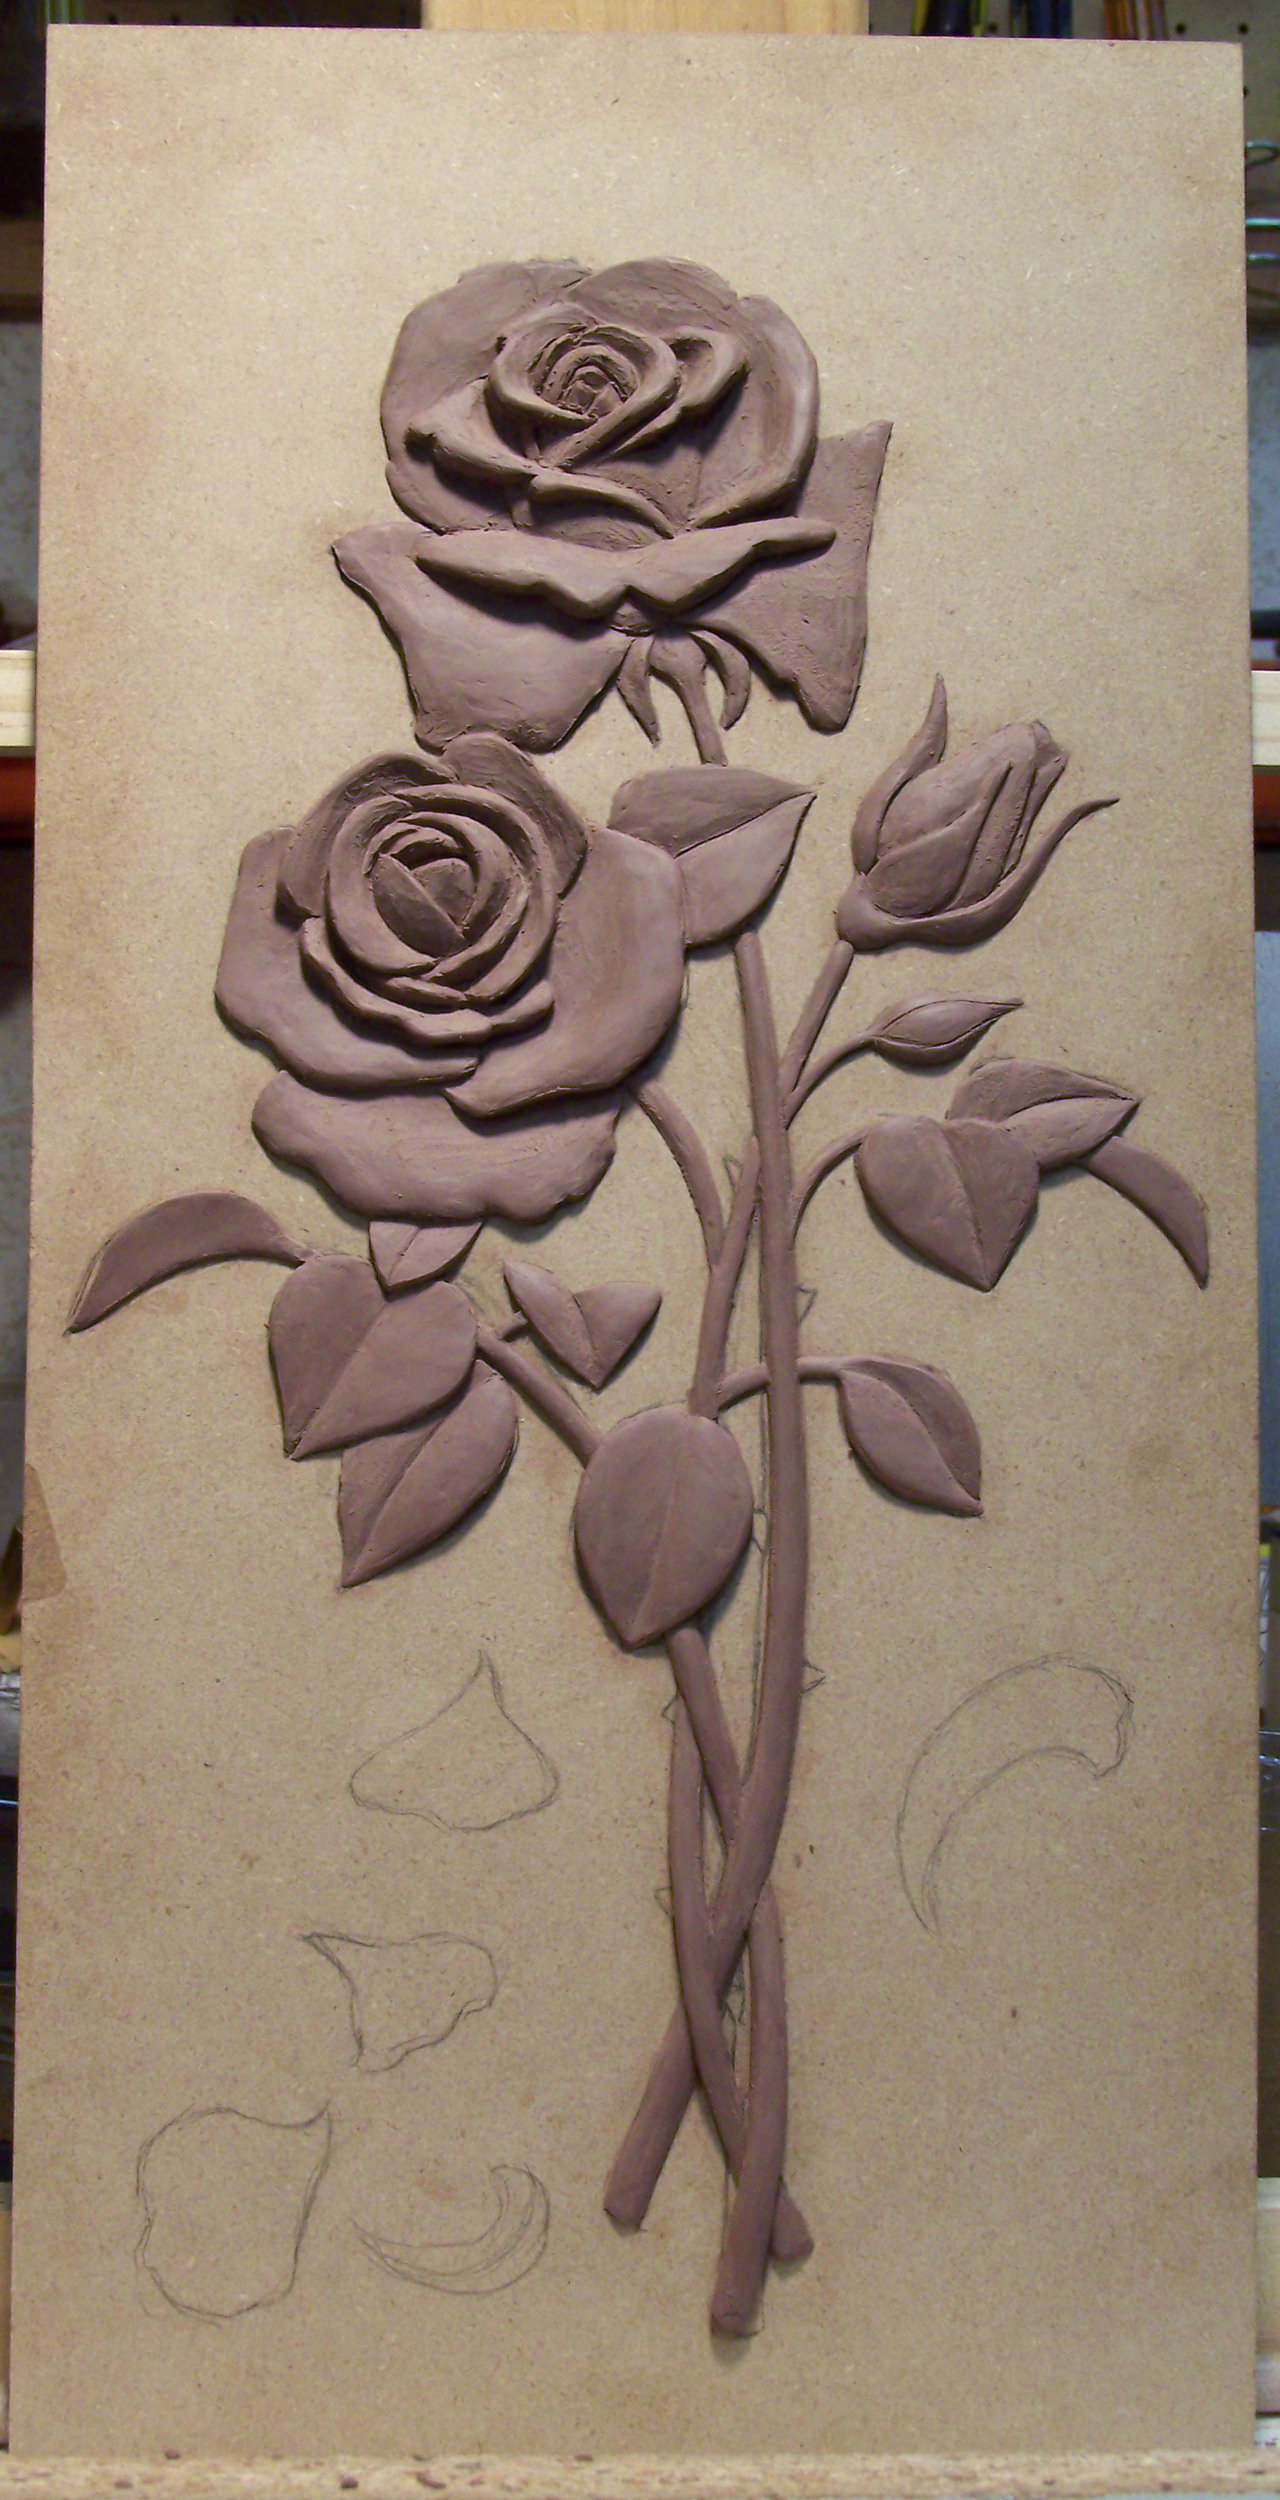 Bas Relief Rose Sculpture Hanging Rose Sculpture